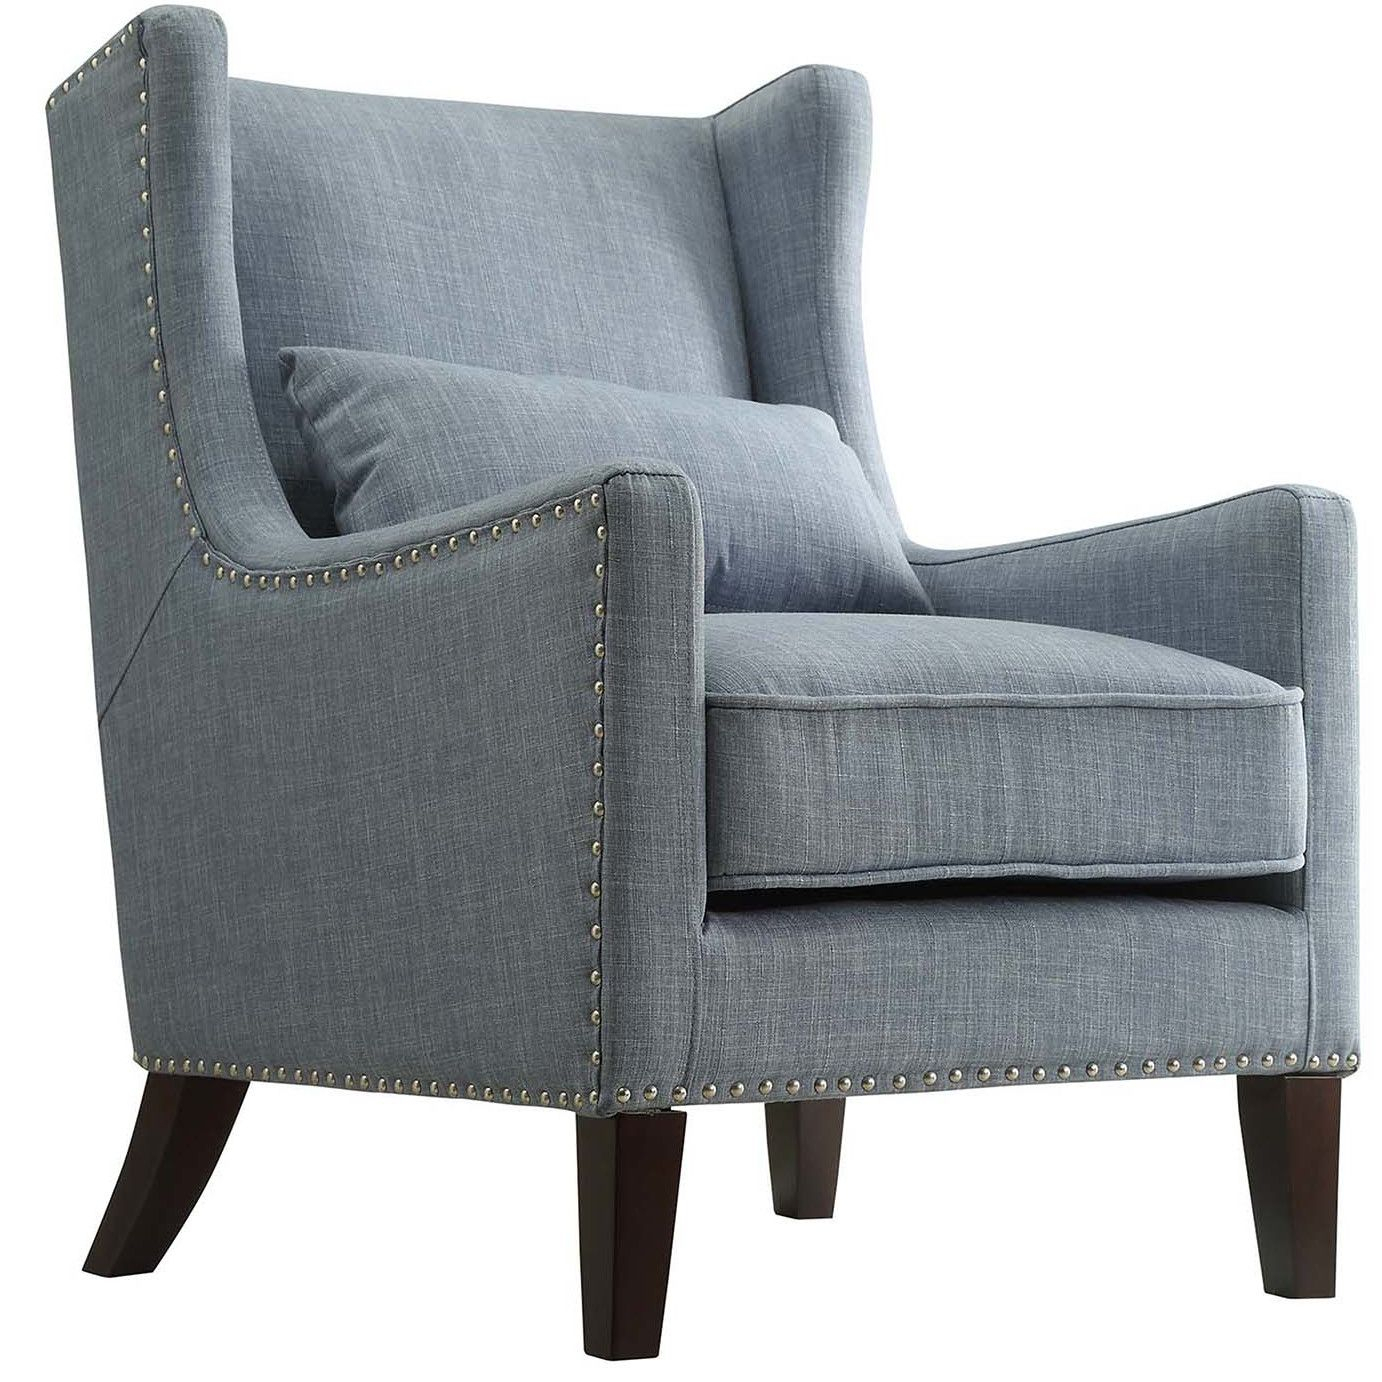 Kingstown Home Jeannette Wingback Arm Chair | Home Decor Throughout Andover Wingback Chairs (View 15 of 15)